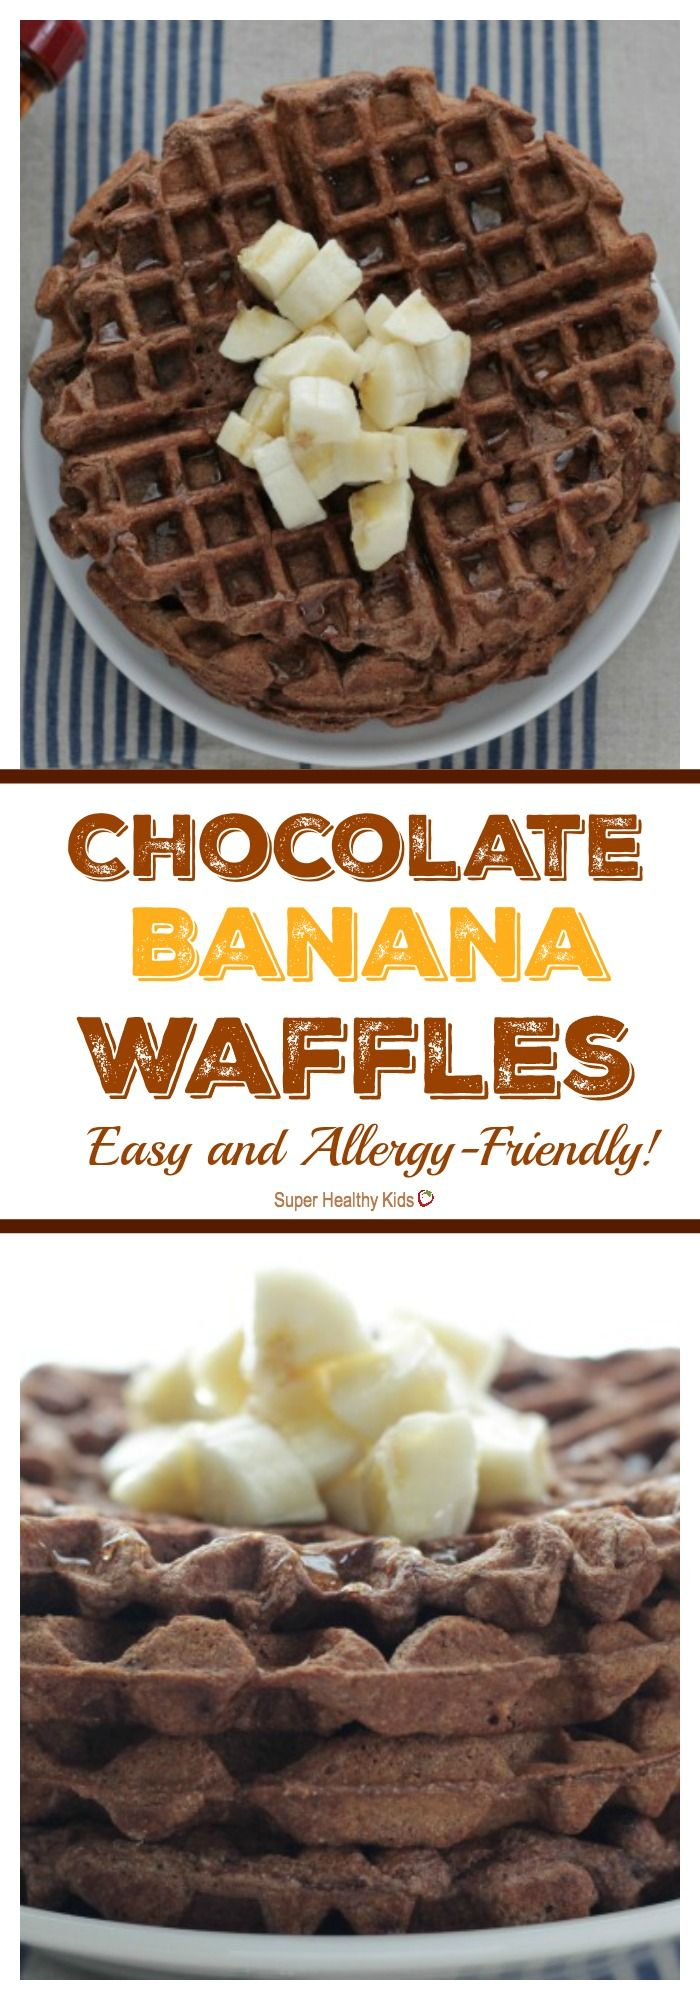 Chocolate Banana Waffles: Easy and Allergy-Friendly